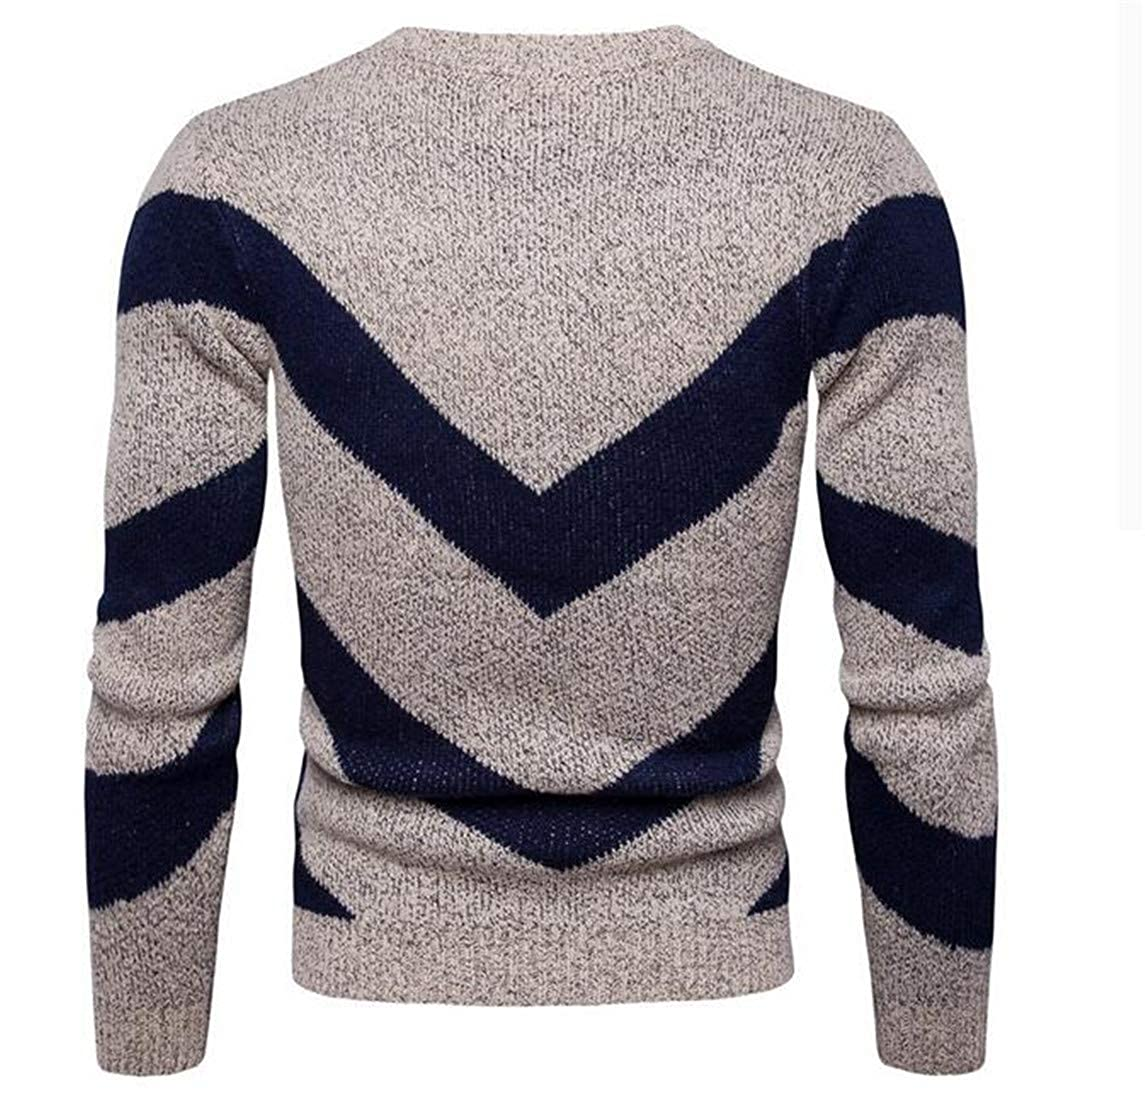 Wofupowga Men Crewneck Contrast Color Striped Stylish Long Sleeve Knitted Pullover Jumper Sweater